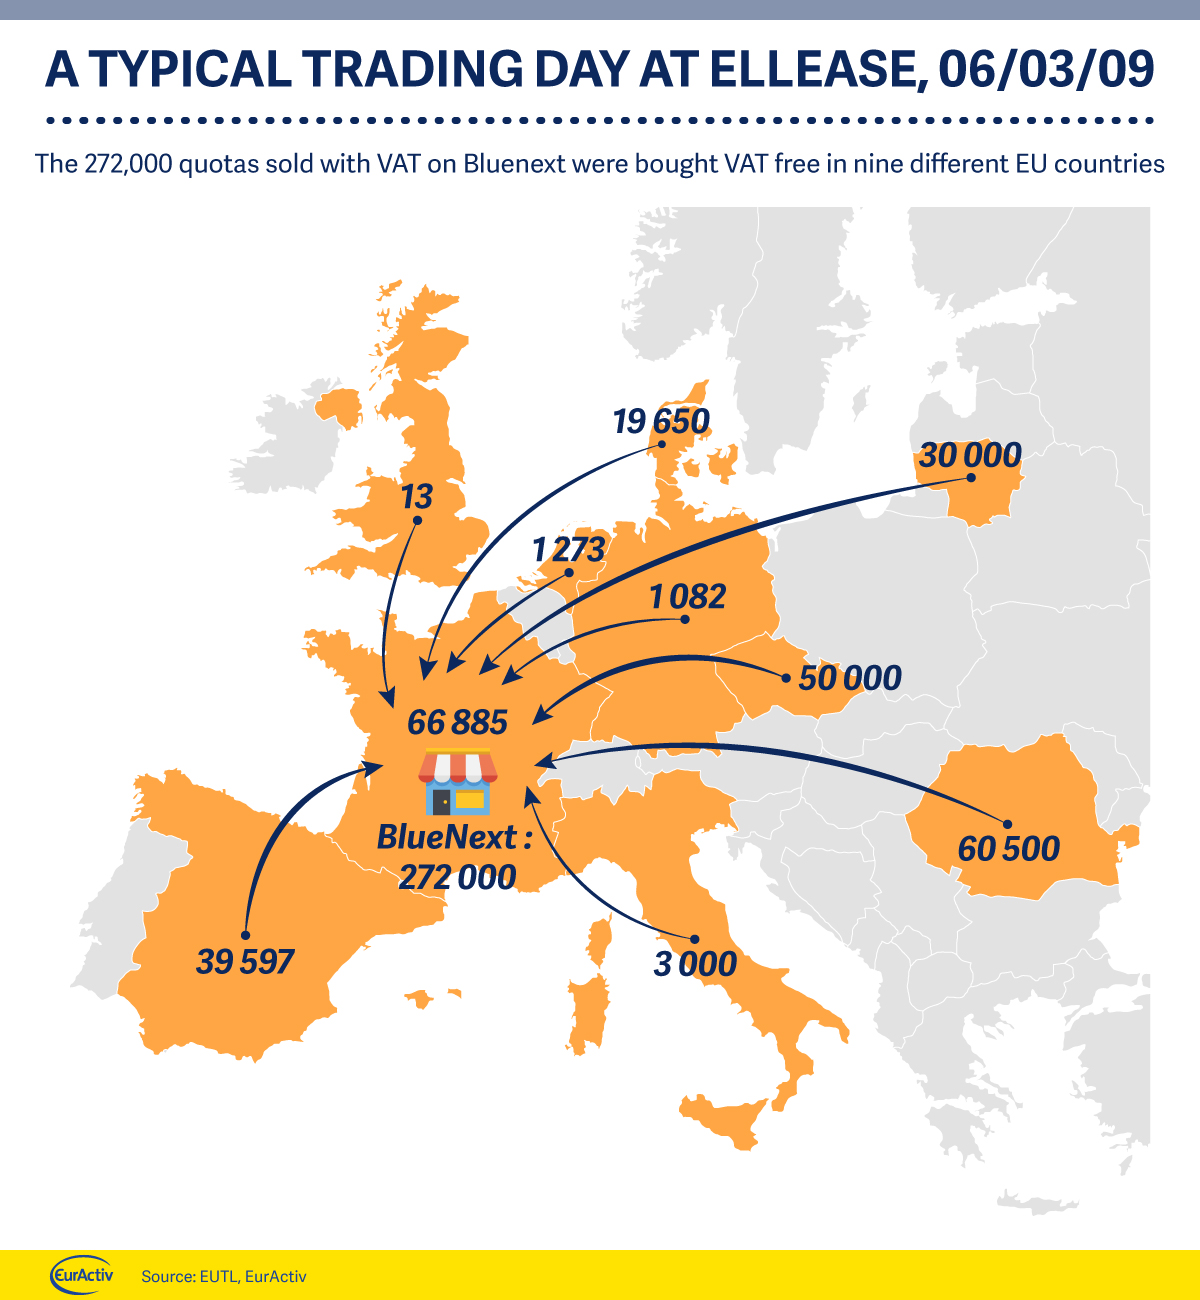 A typical trading day at Ellease, 06/03/09